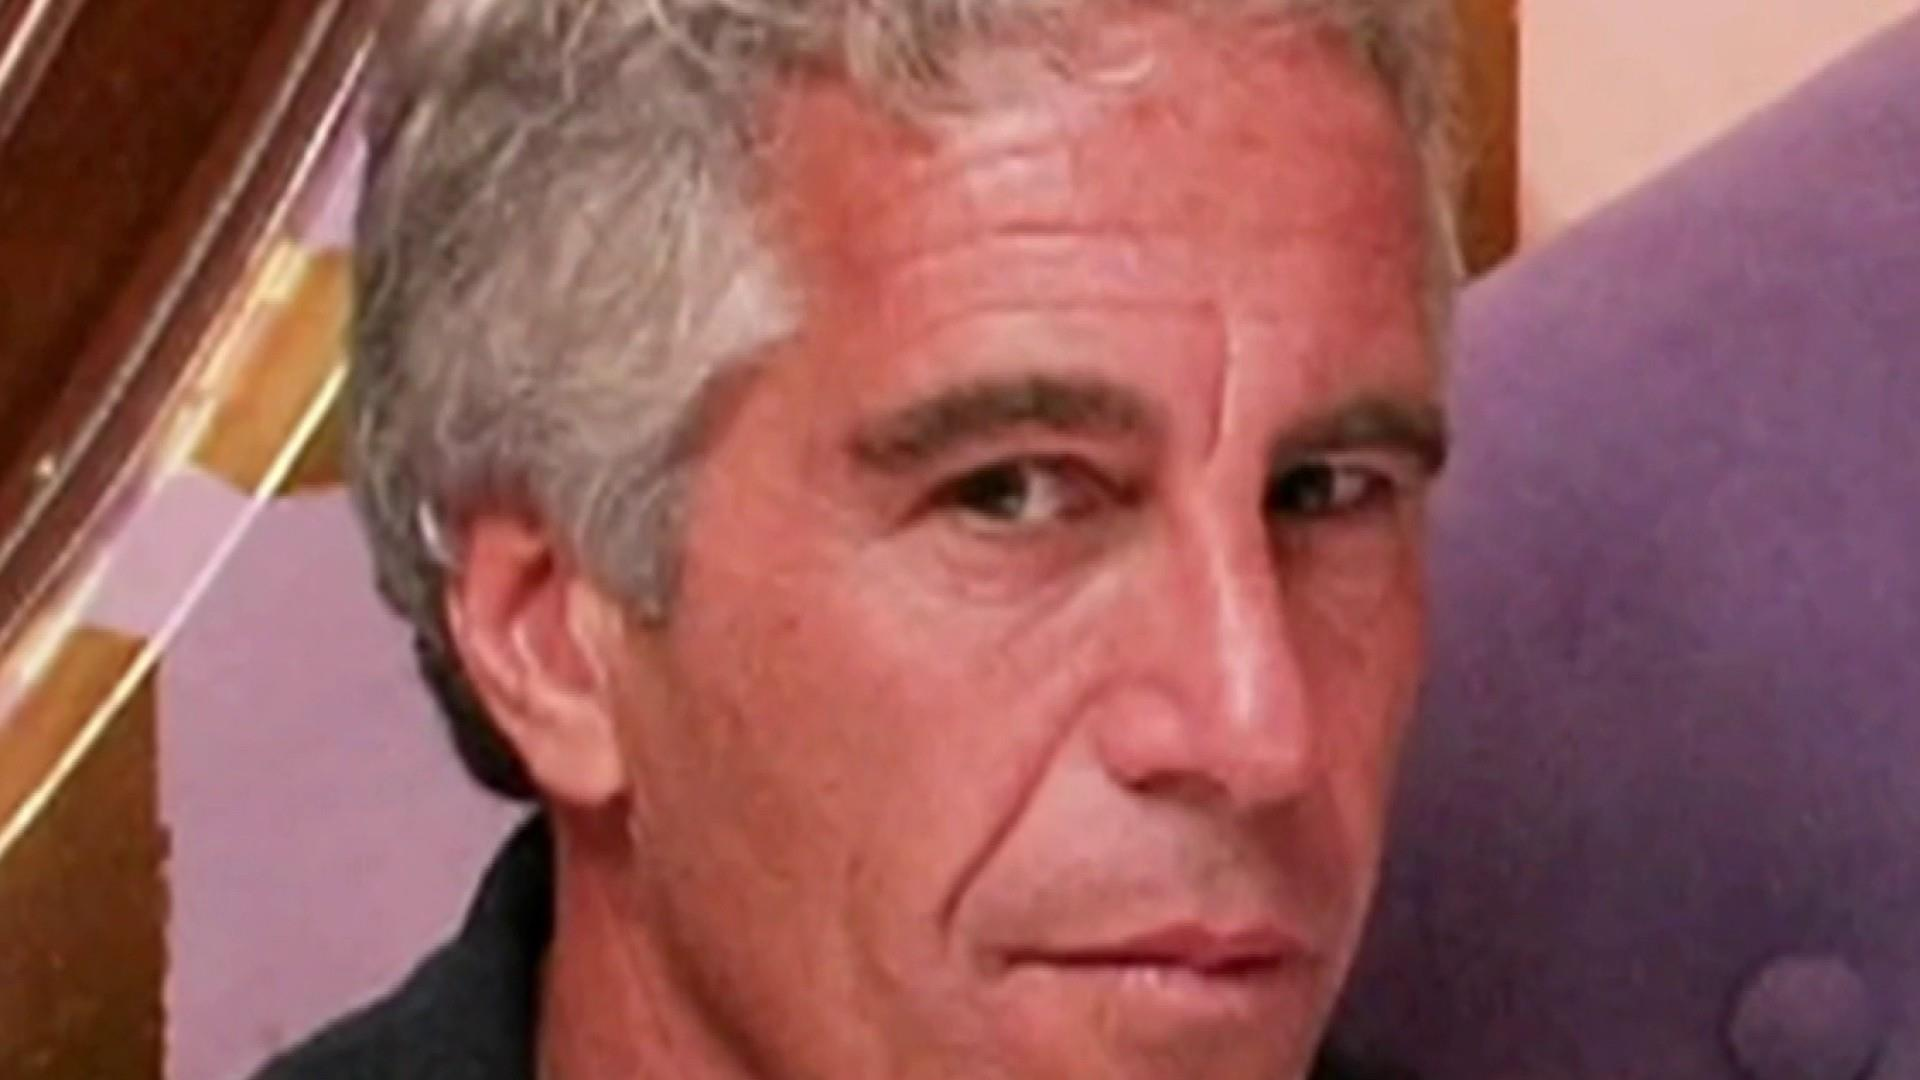 Epstein dead by apparent suicide day after disturbing docs unsealed